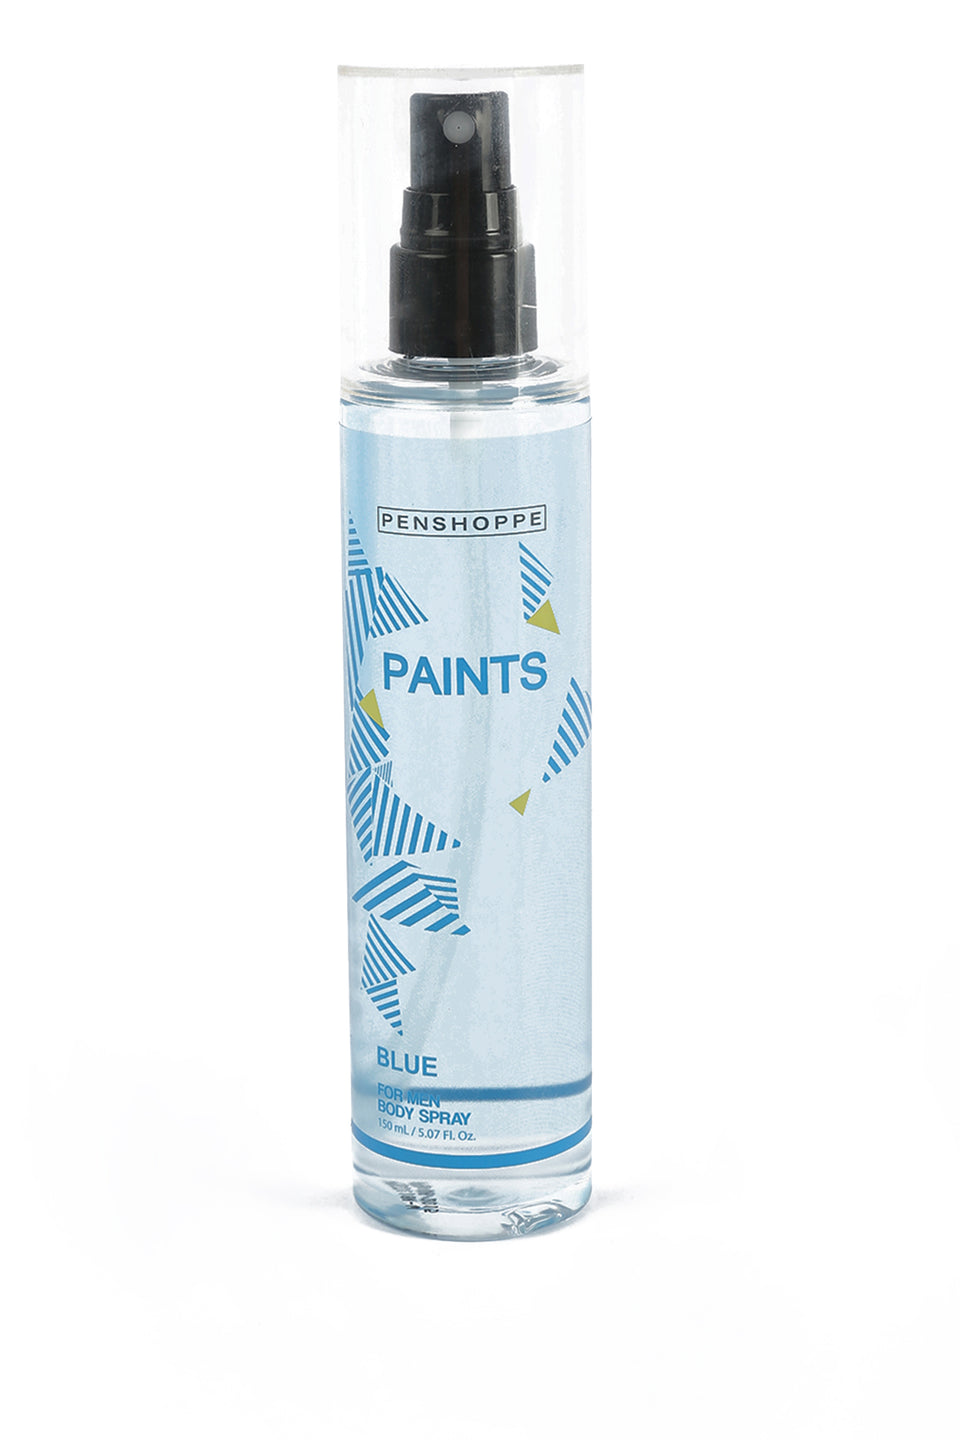 Penshoppe Paints Blue Body Spray for Men 150ML